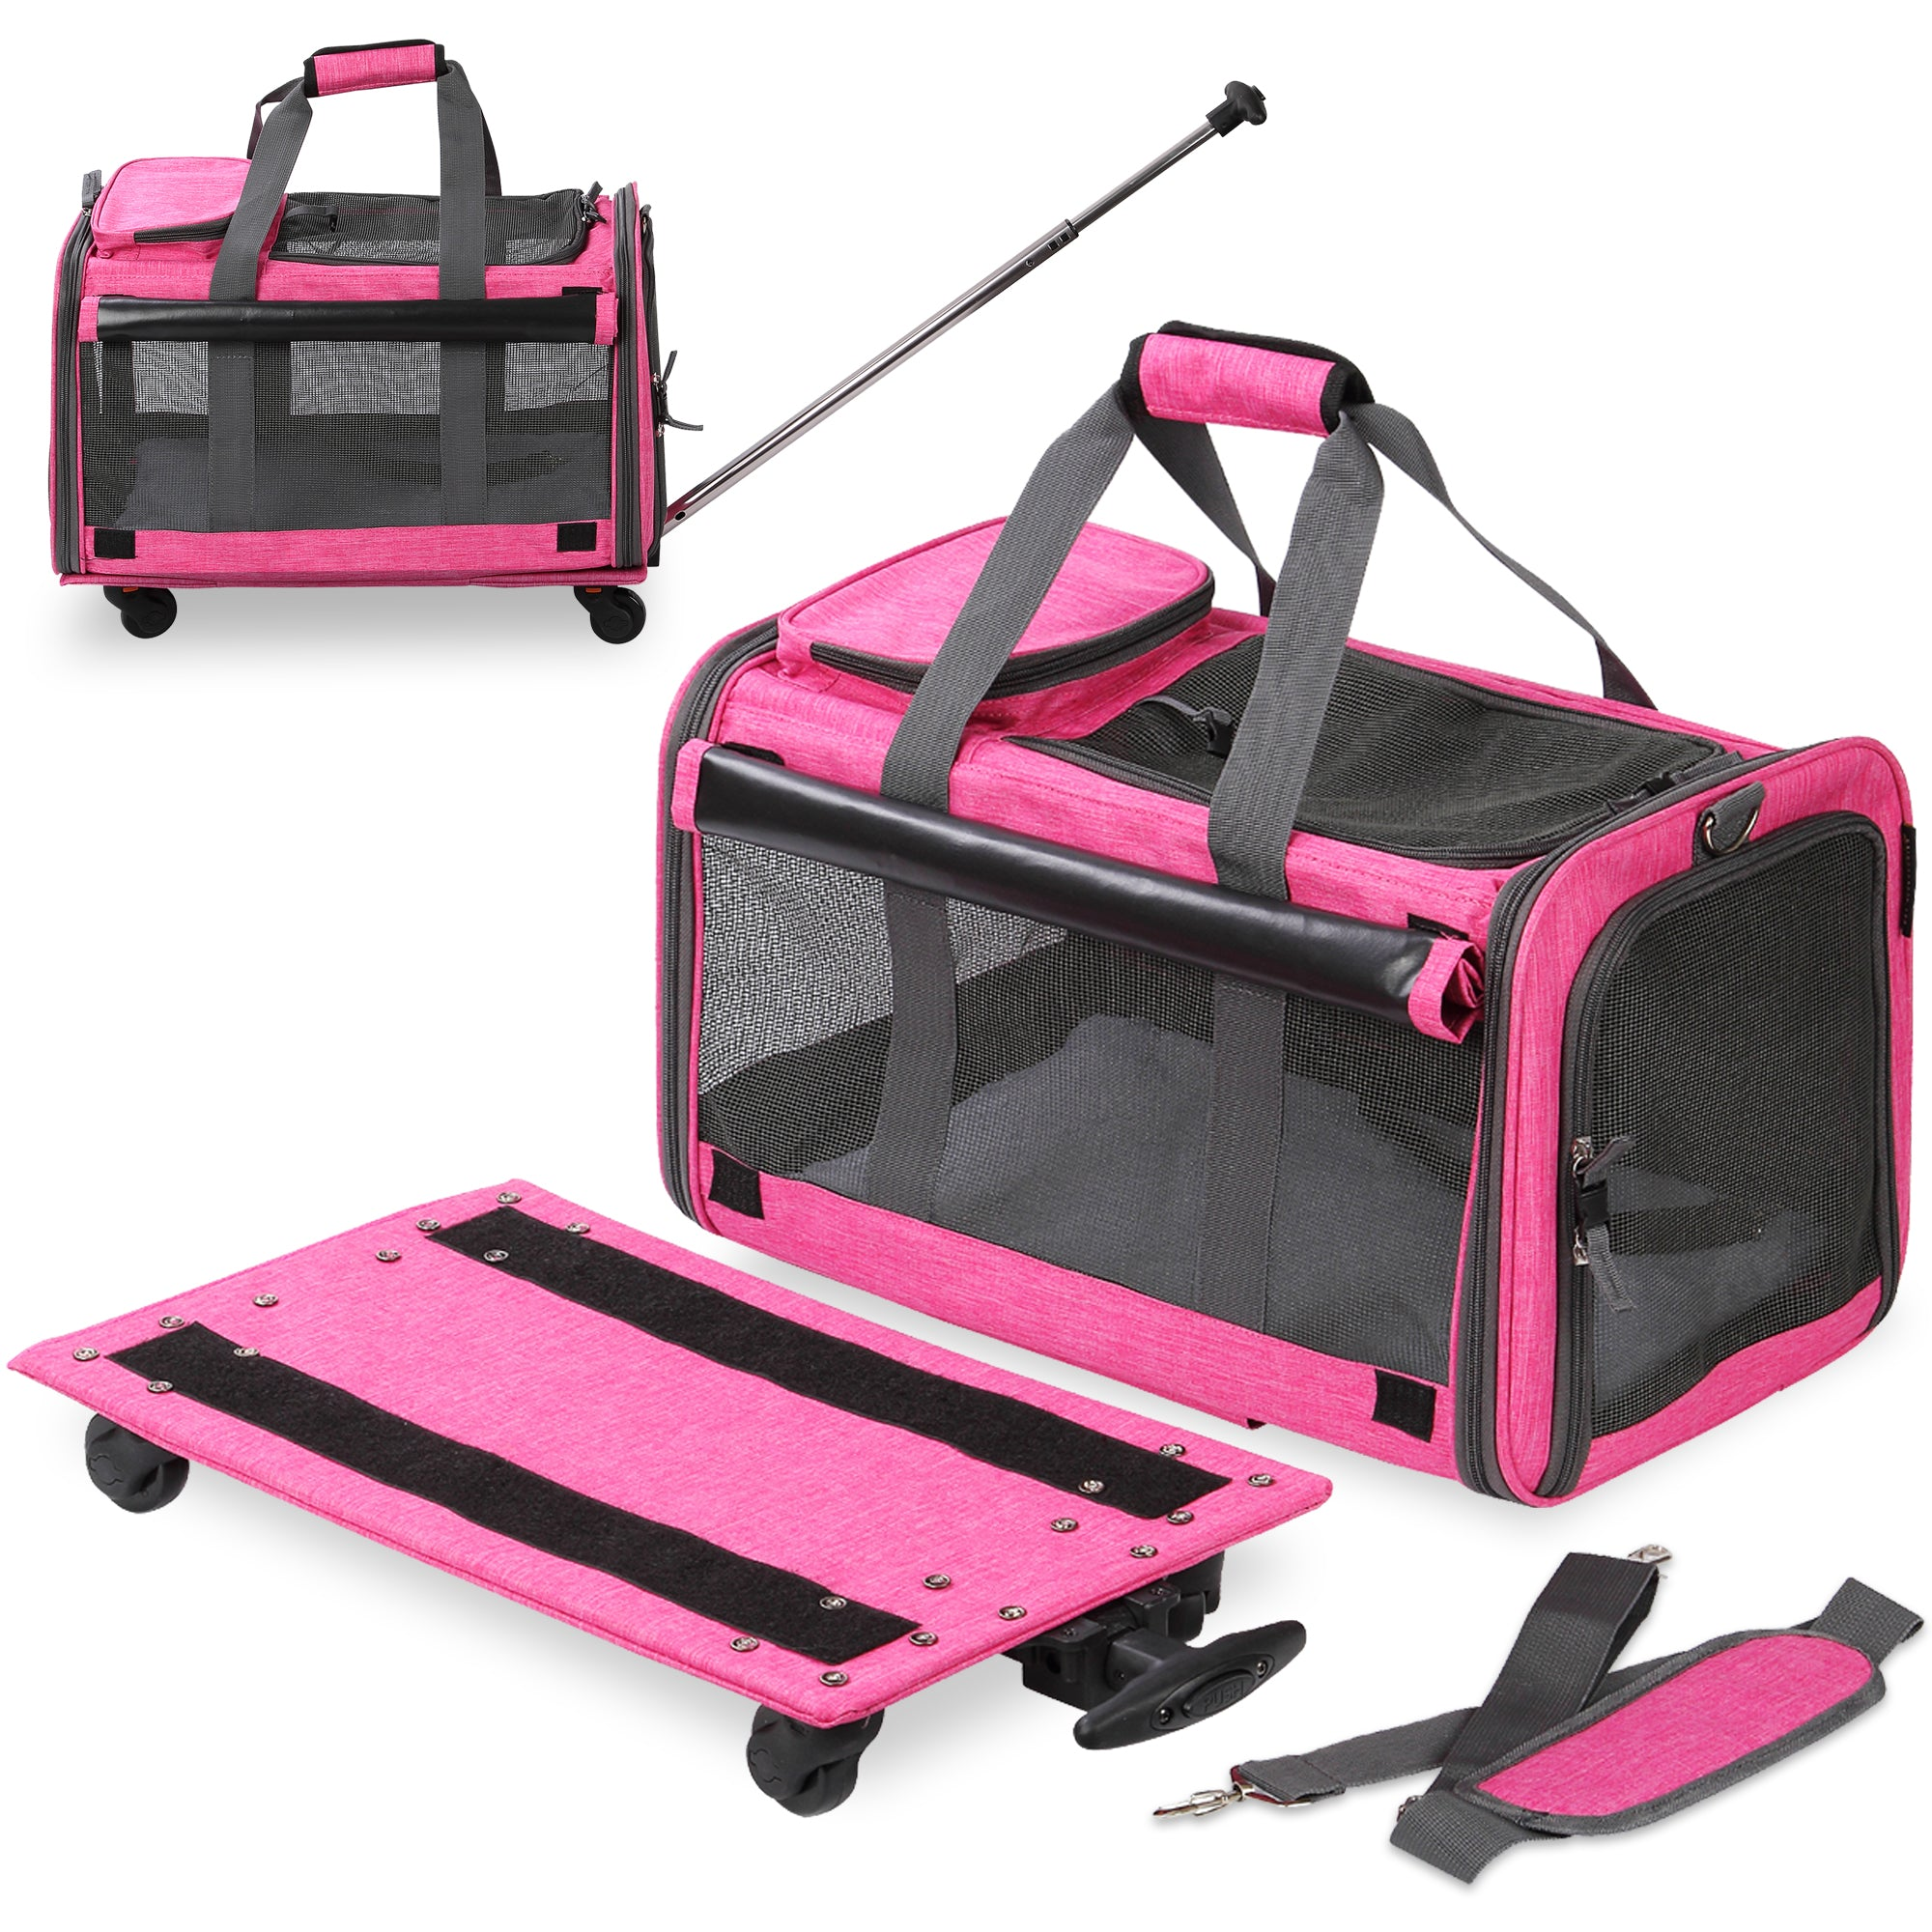 Pet Carrier with Detachable Wheels for Small and Medium Dogs & Cats - Pink